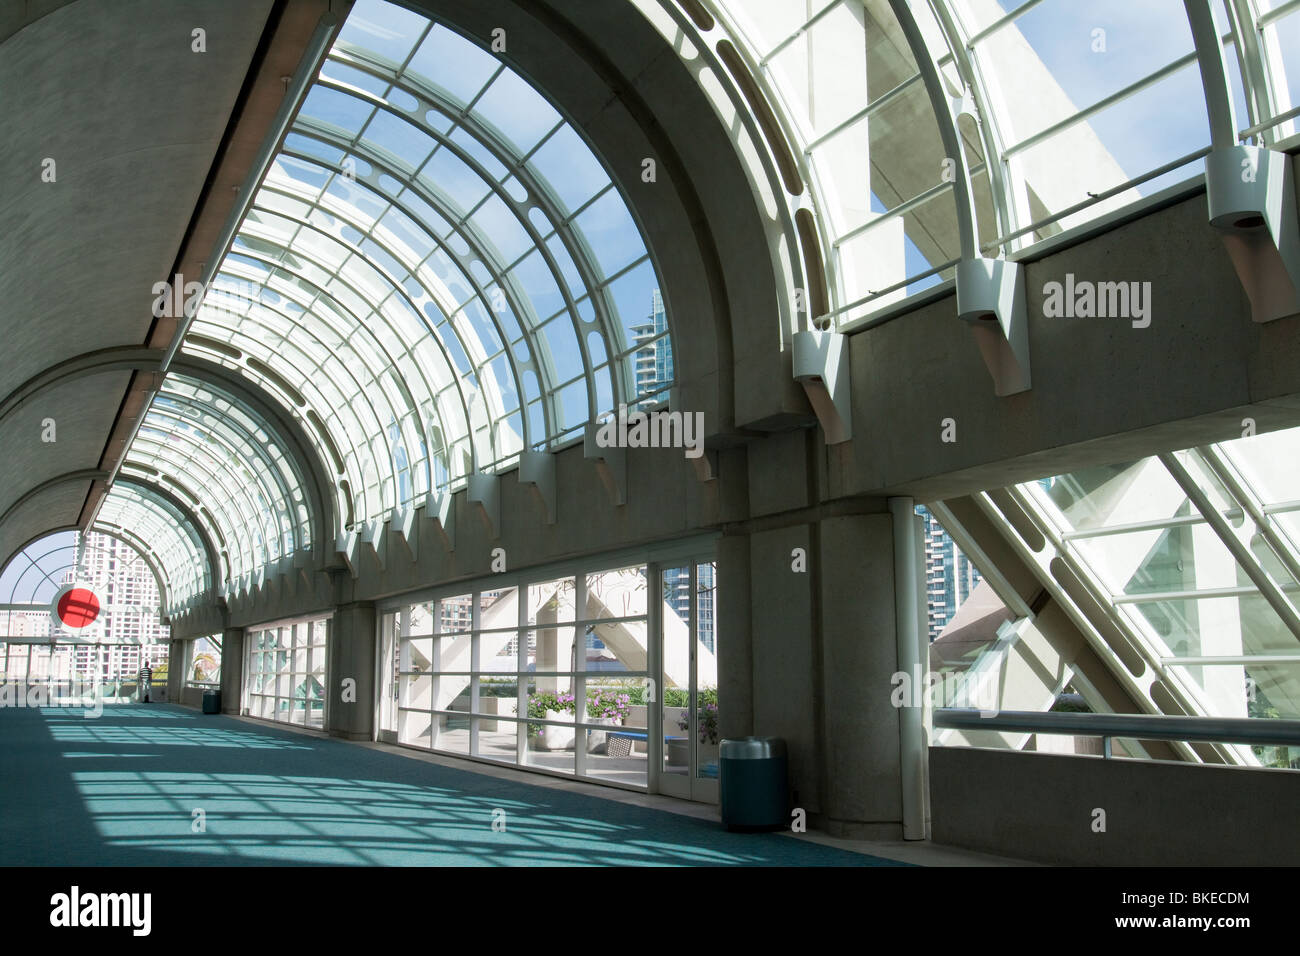 Natural light shining through curved glass ceiling in hallway in San Diego Convention Center, California - Stock Image